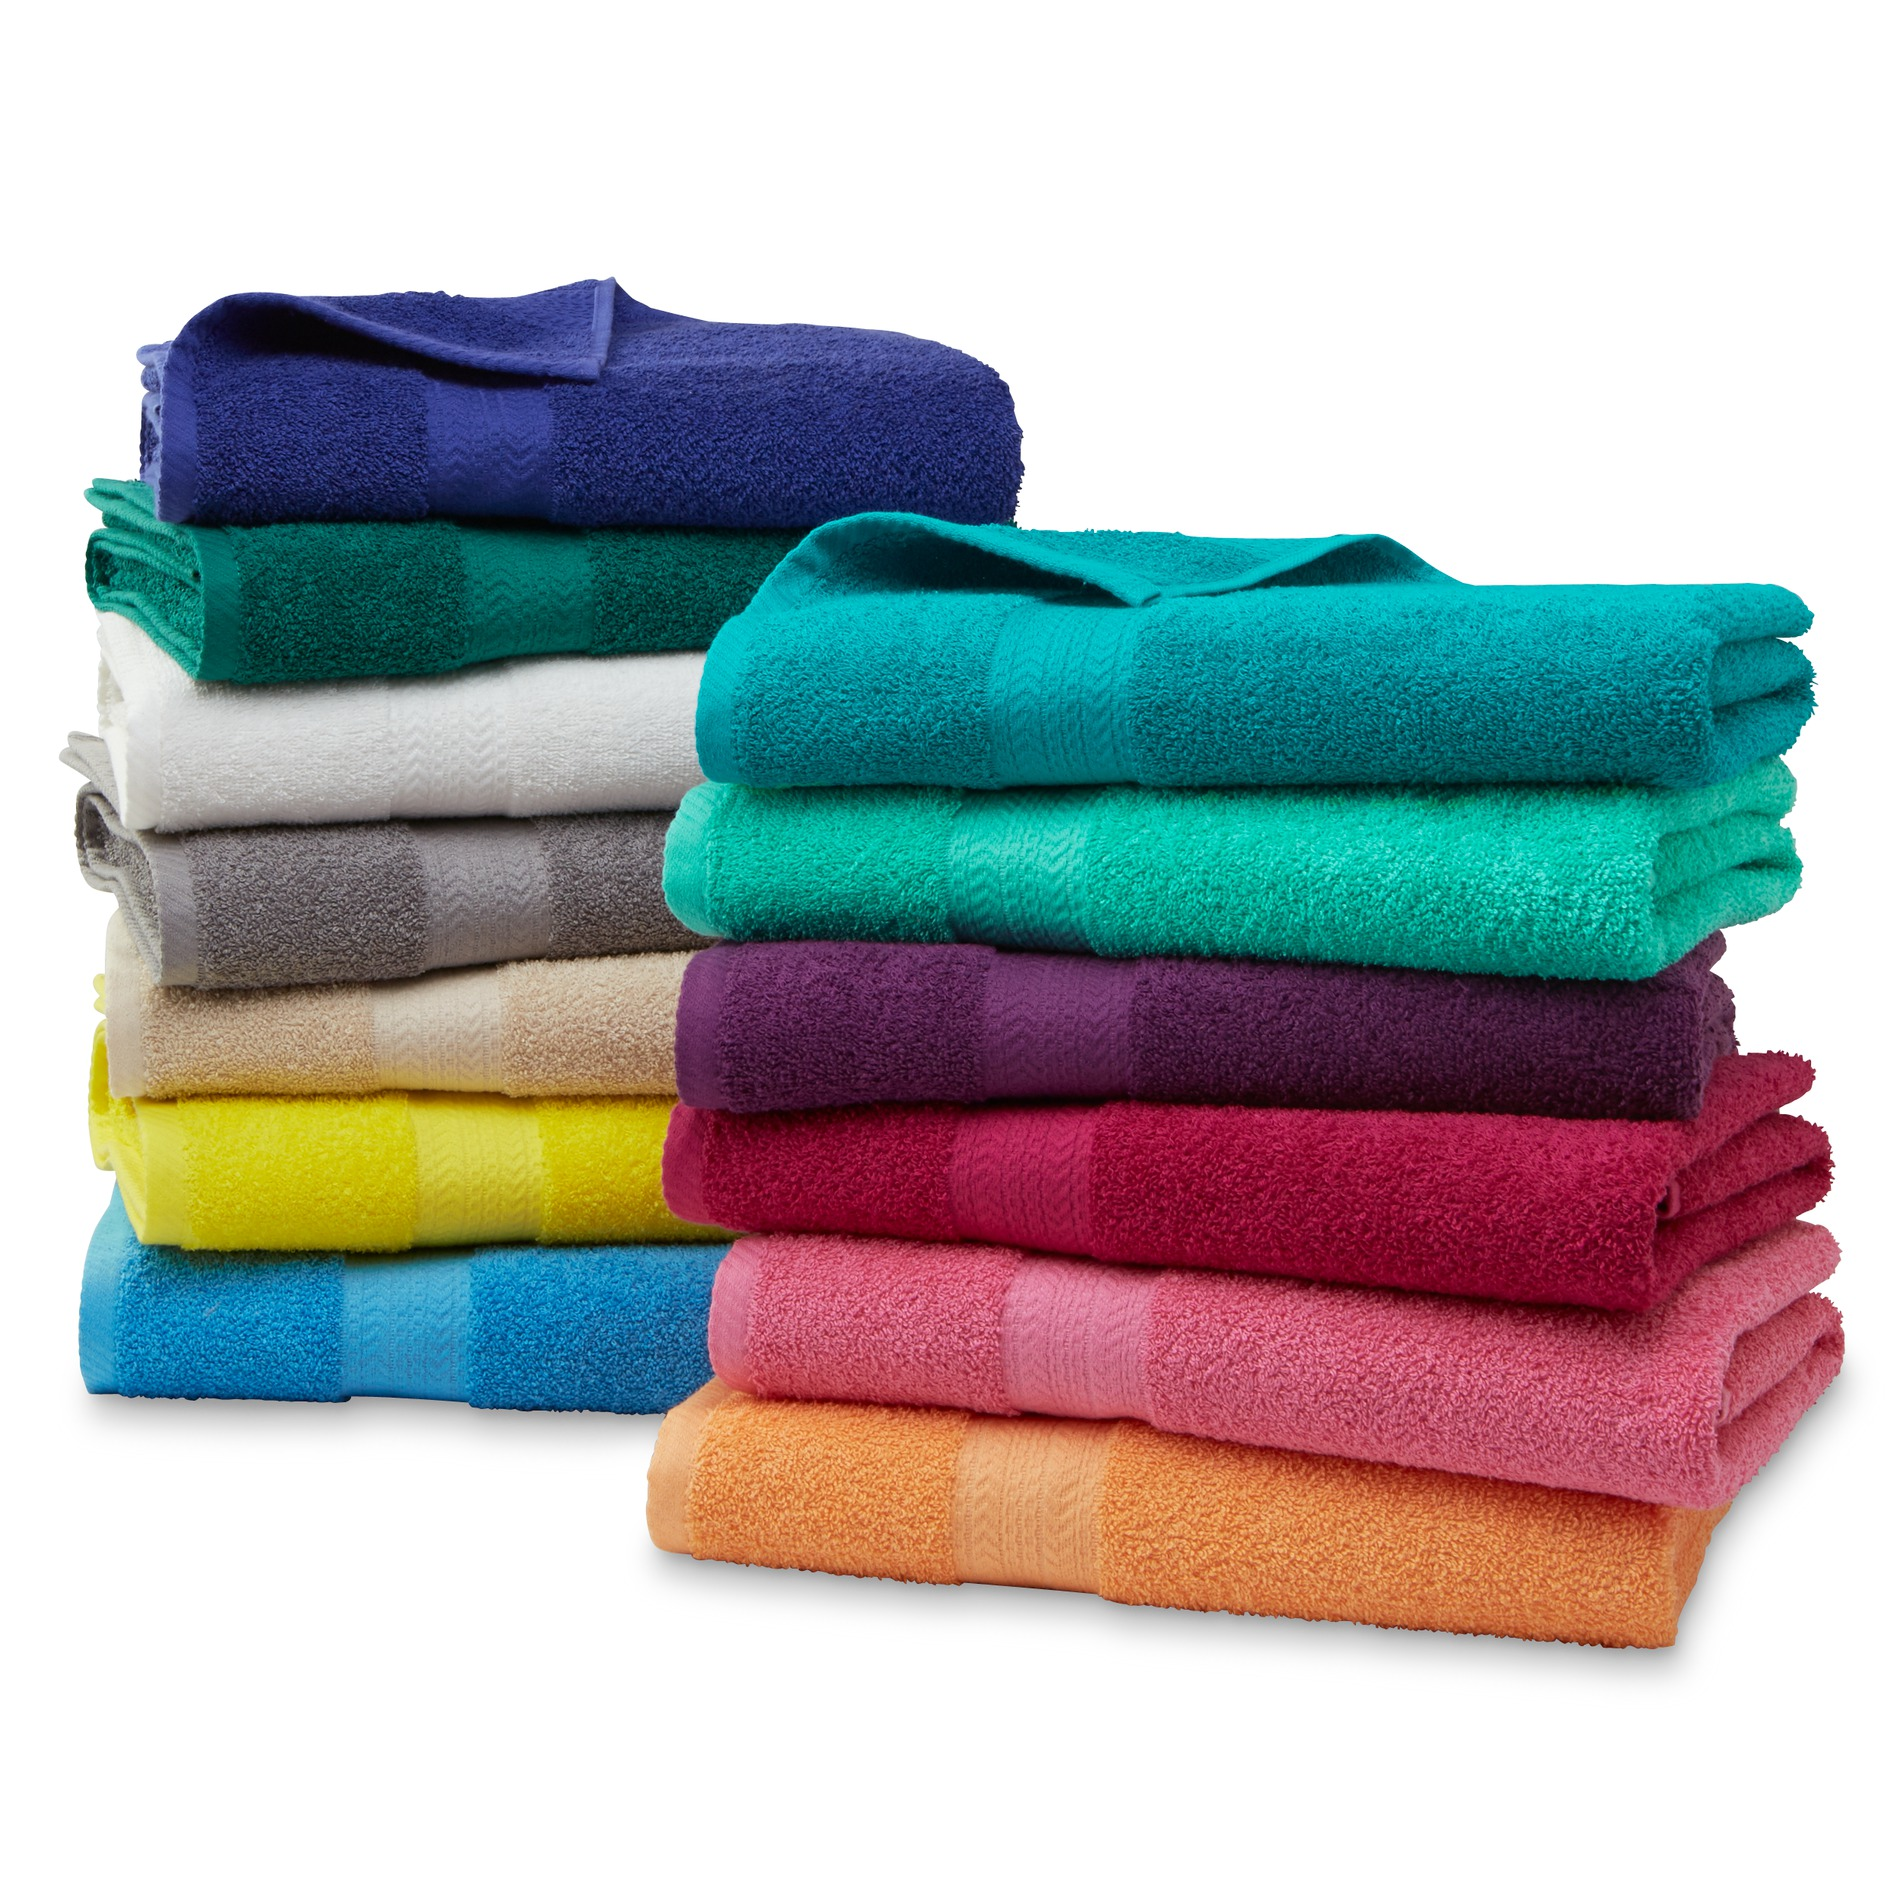 Bath Hand Towels With Sayings Cotton Bath Towels Bath Towels